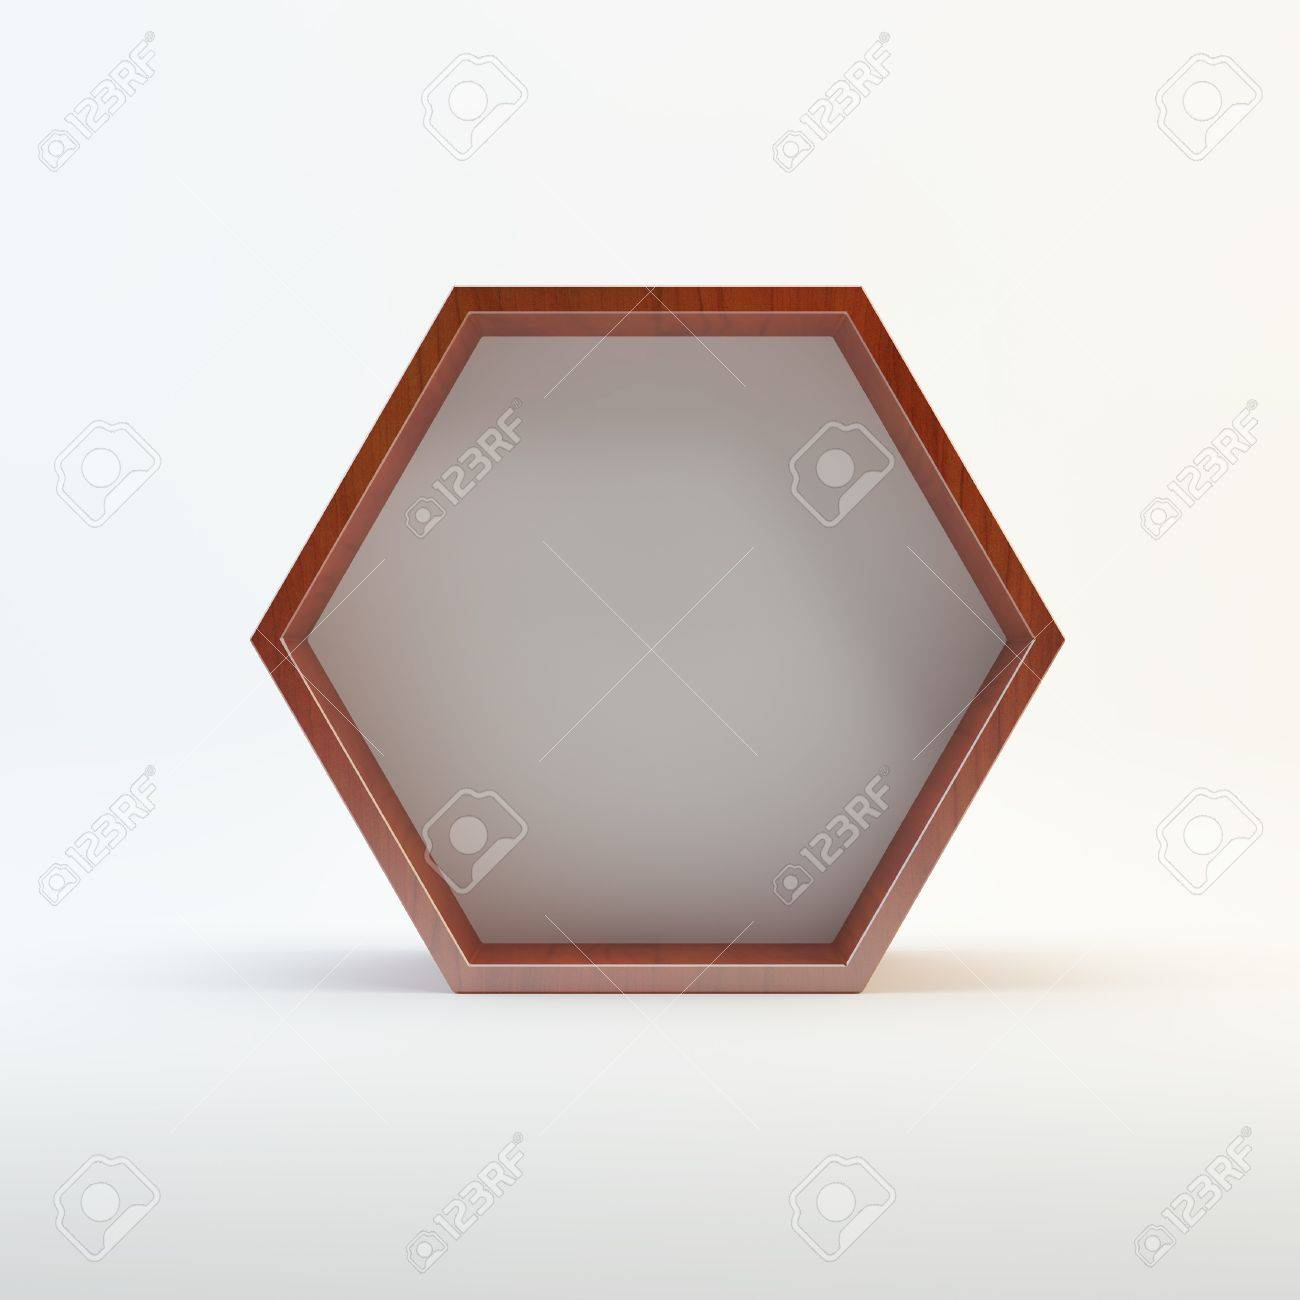 One Blank Hexagon Box Display With Wood Frame Template For Design ...